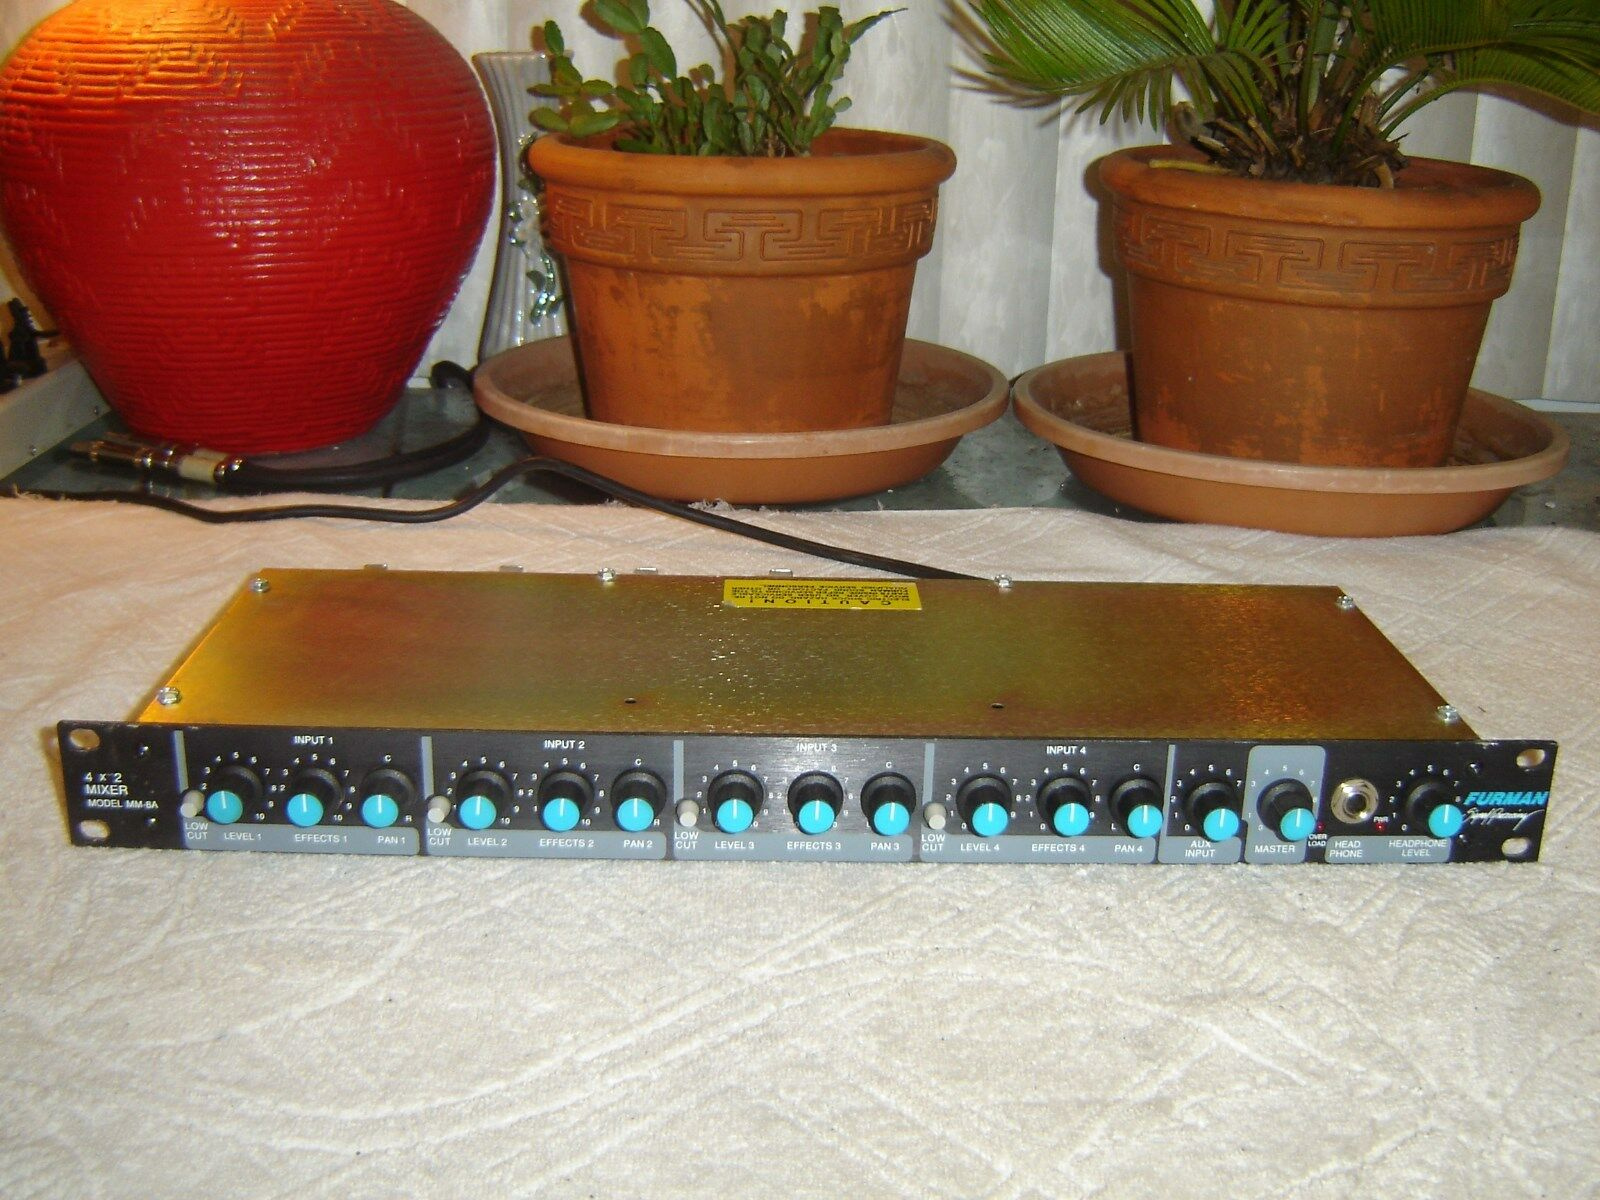 Furman MM-8A 4x2 Mixer, 4 Channel Mixer, Preamp, Vintage Rack